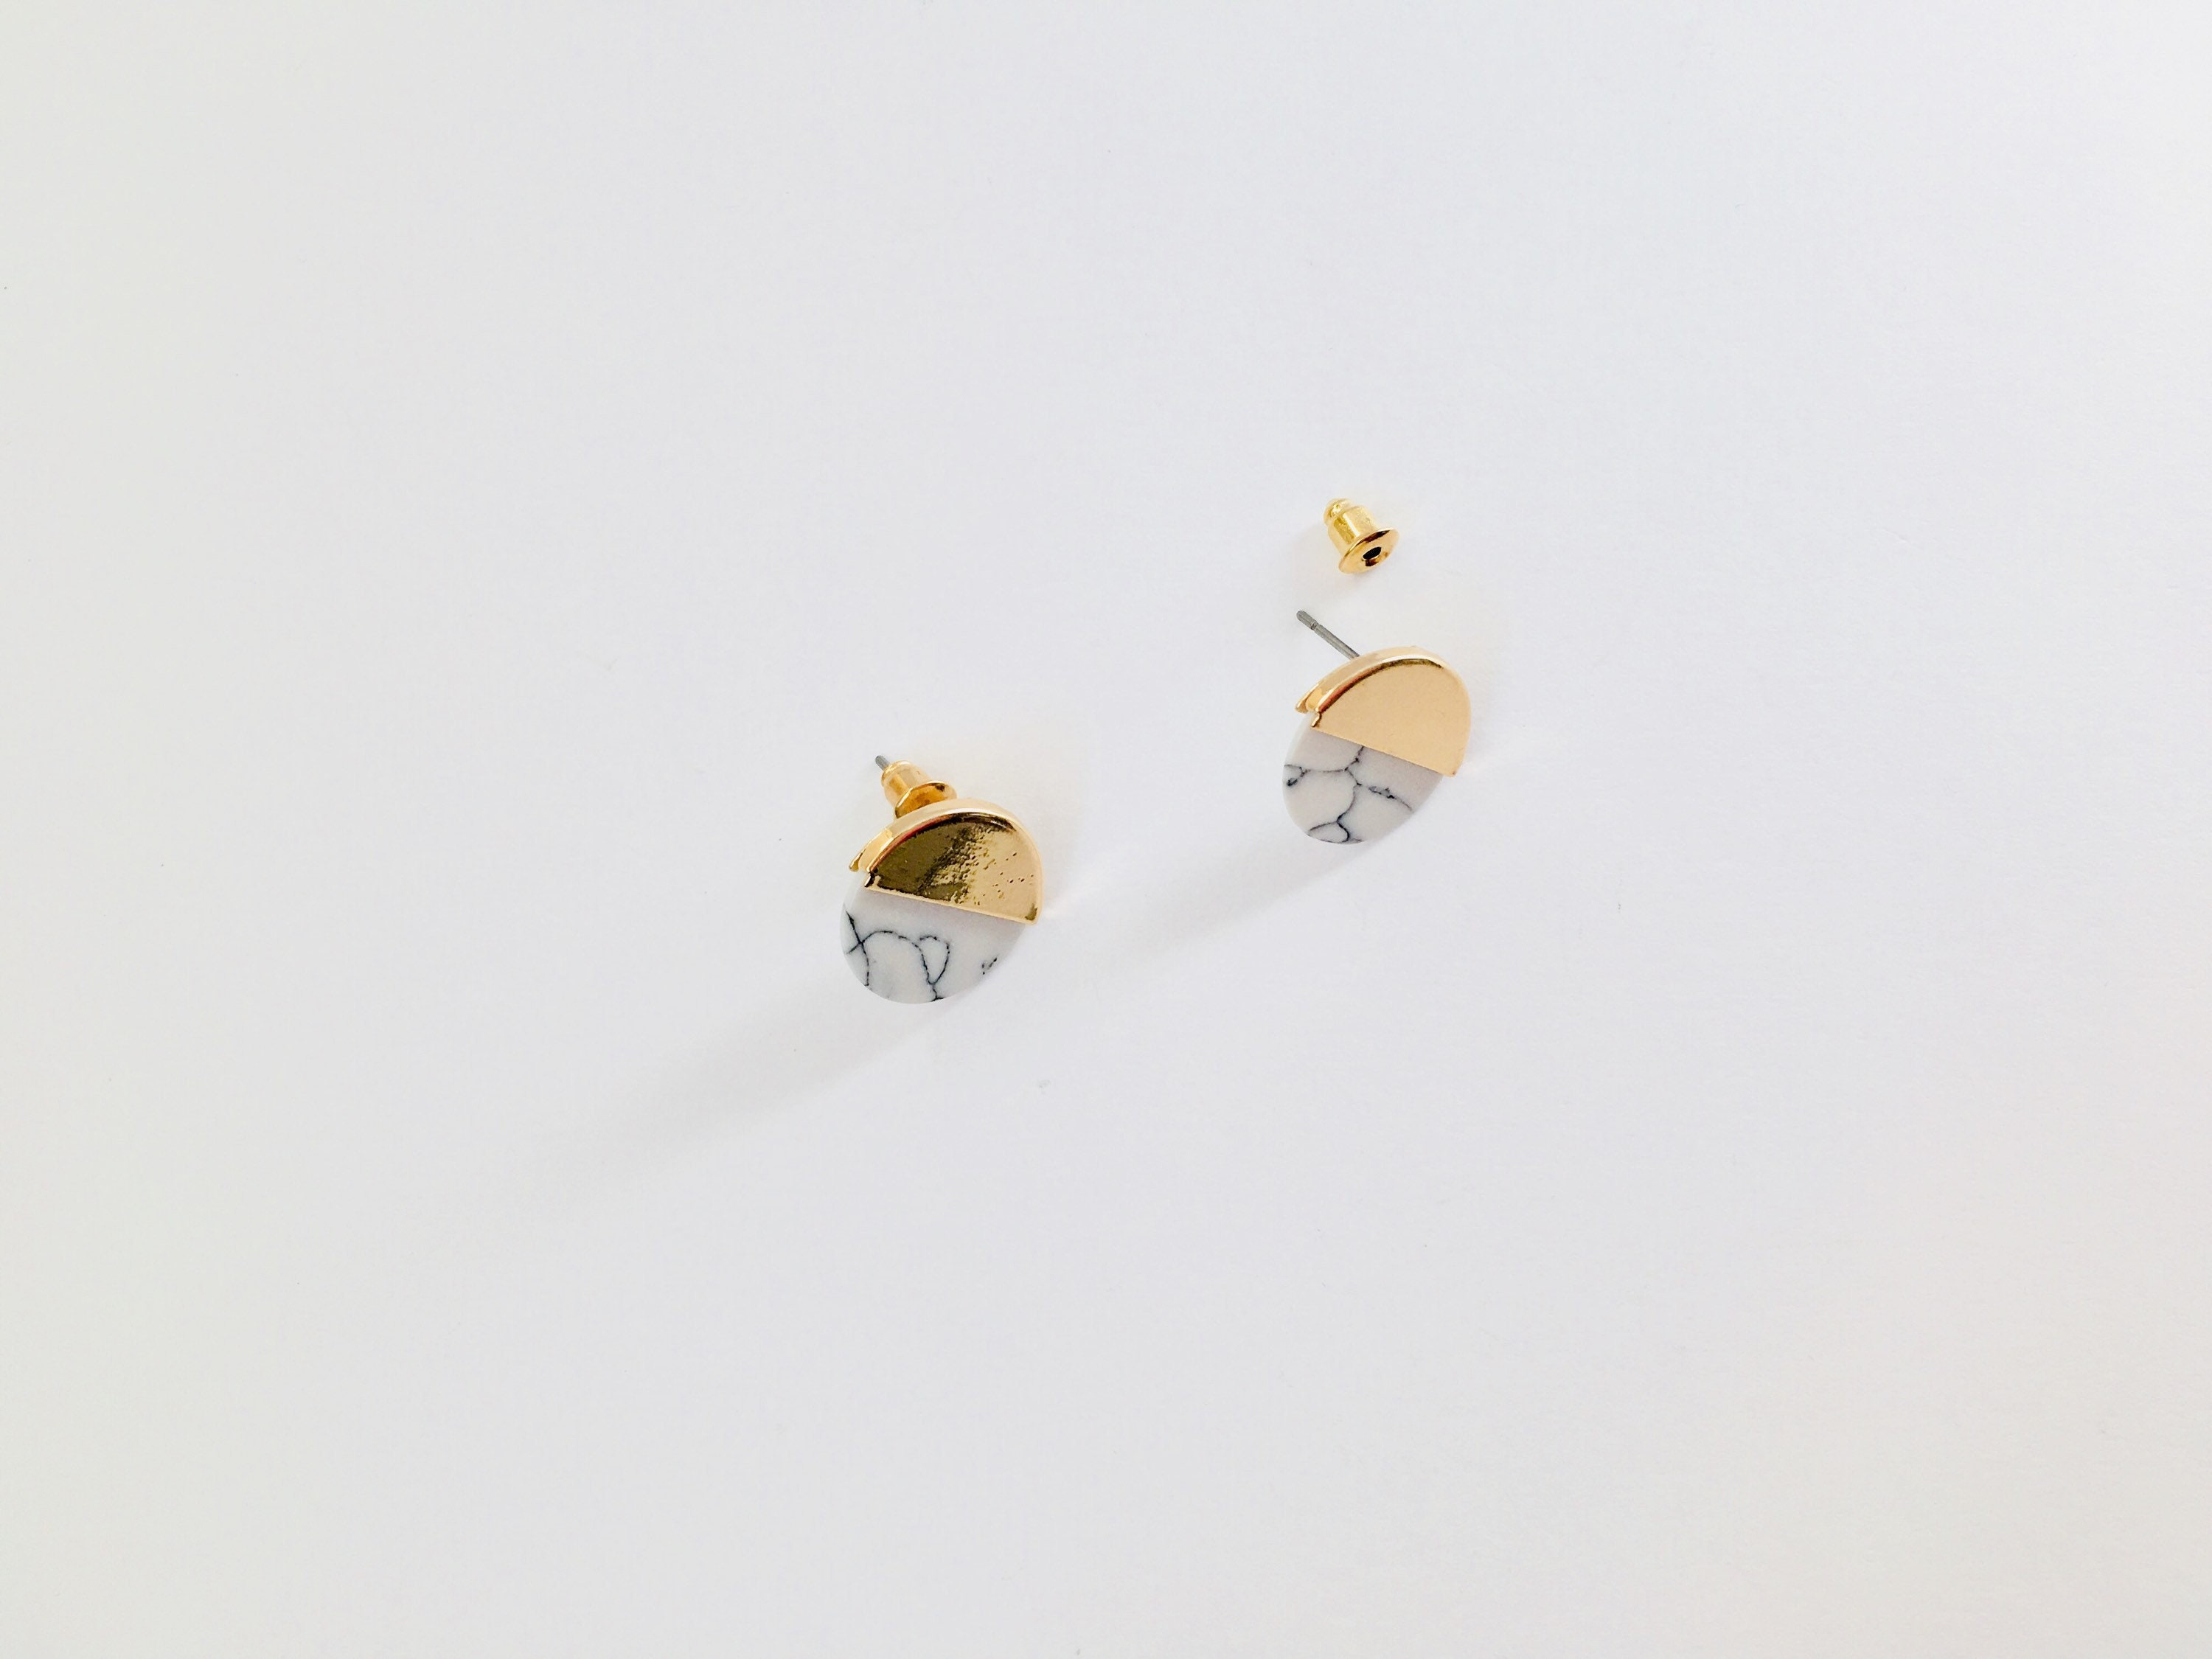 handmade online with livemaster earrings pearls buy white on shop gold item metal matte